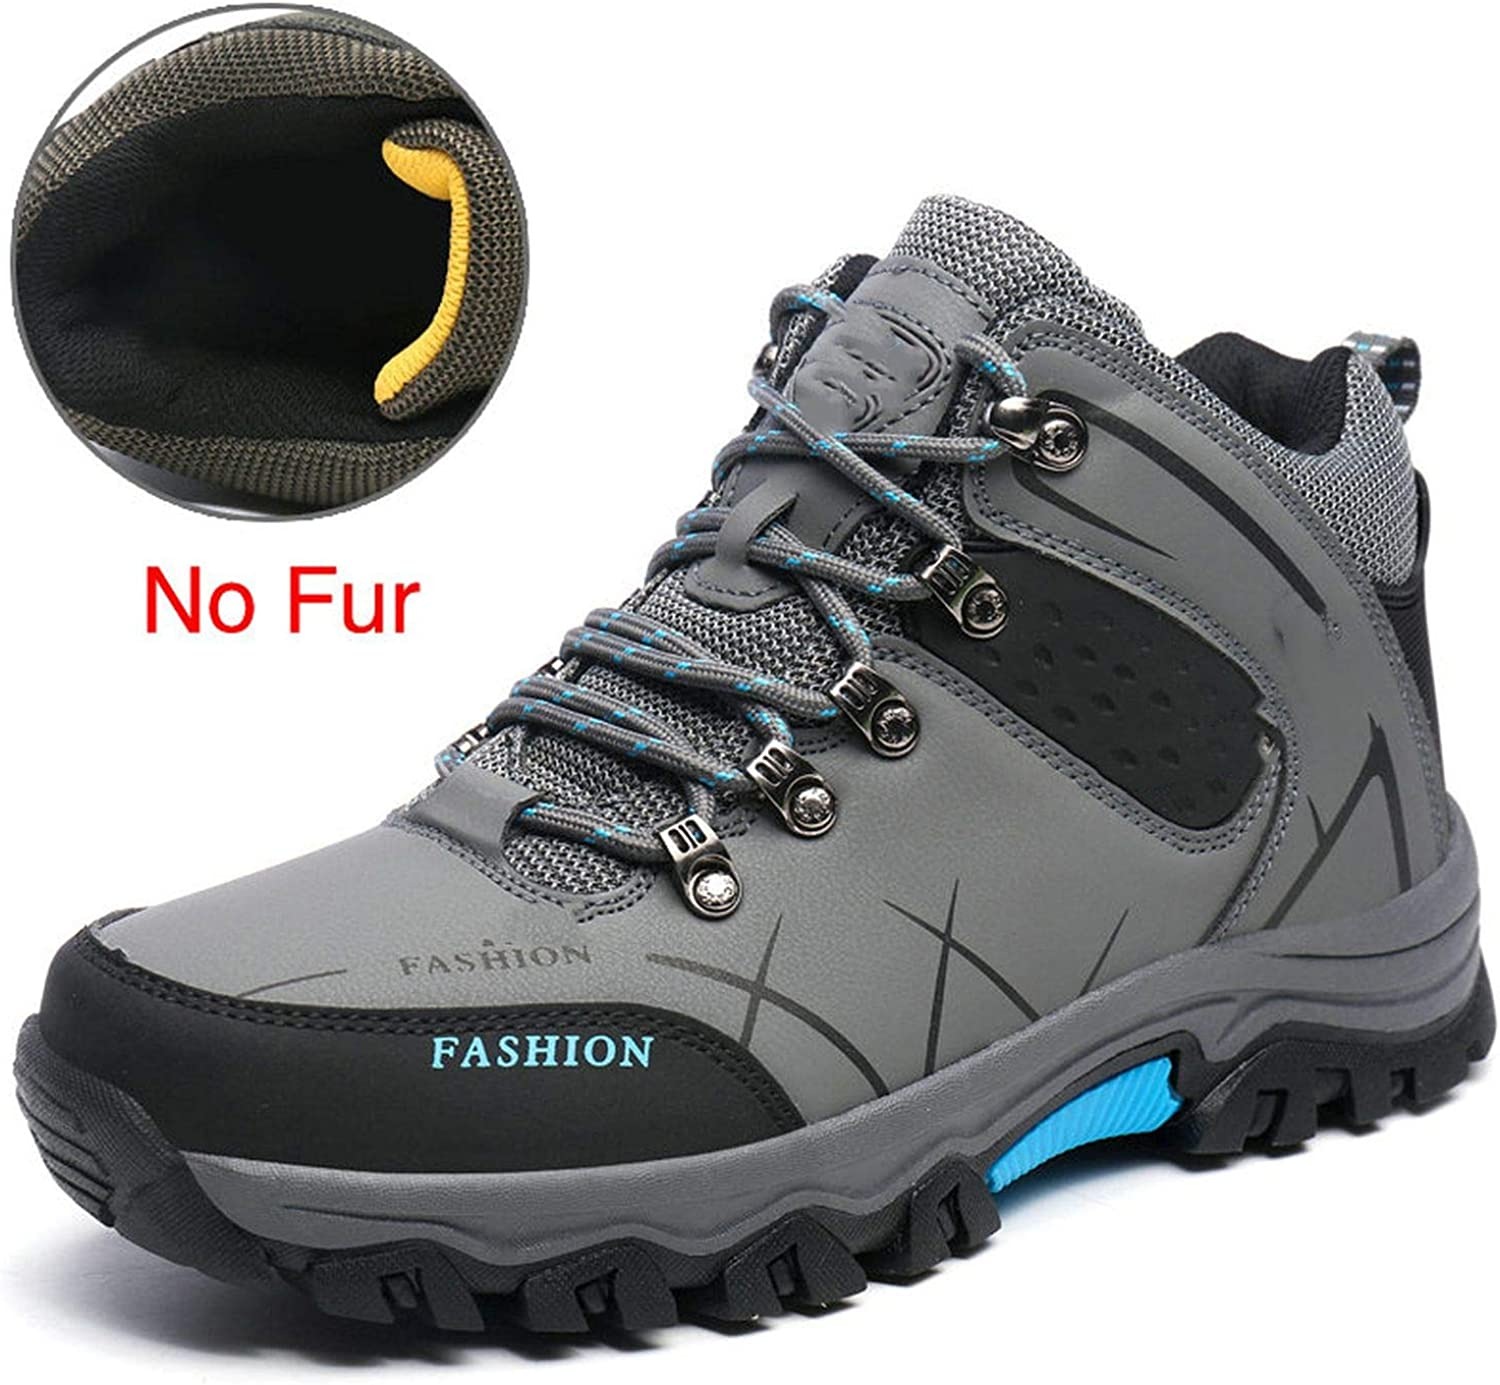 Coolemon Hiking Climbing shoes Delta Professional Waterproof Hiking Boots Tactical Boots Outdoor Mountain Climbing Sports Sneakers,Yellow,45